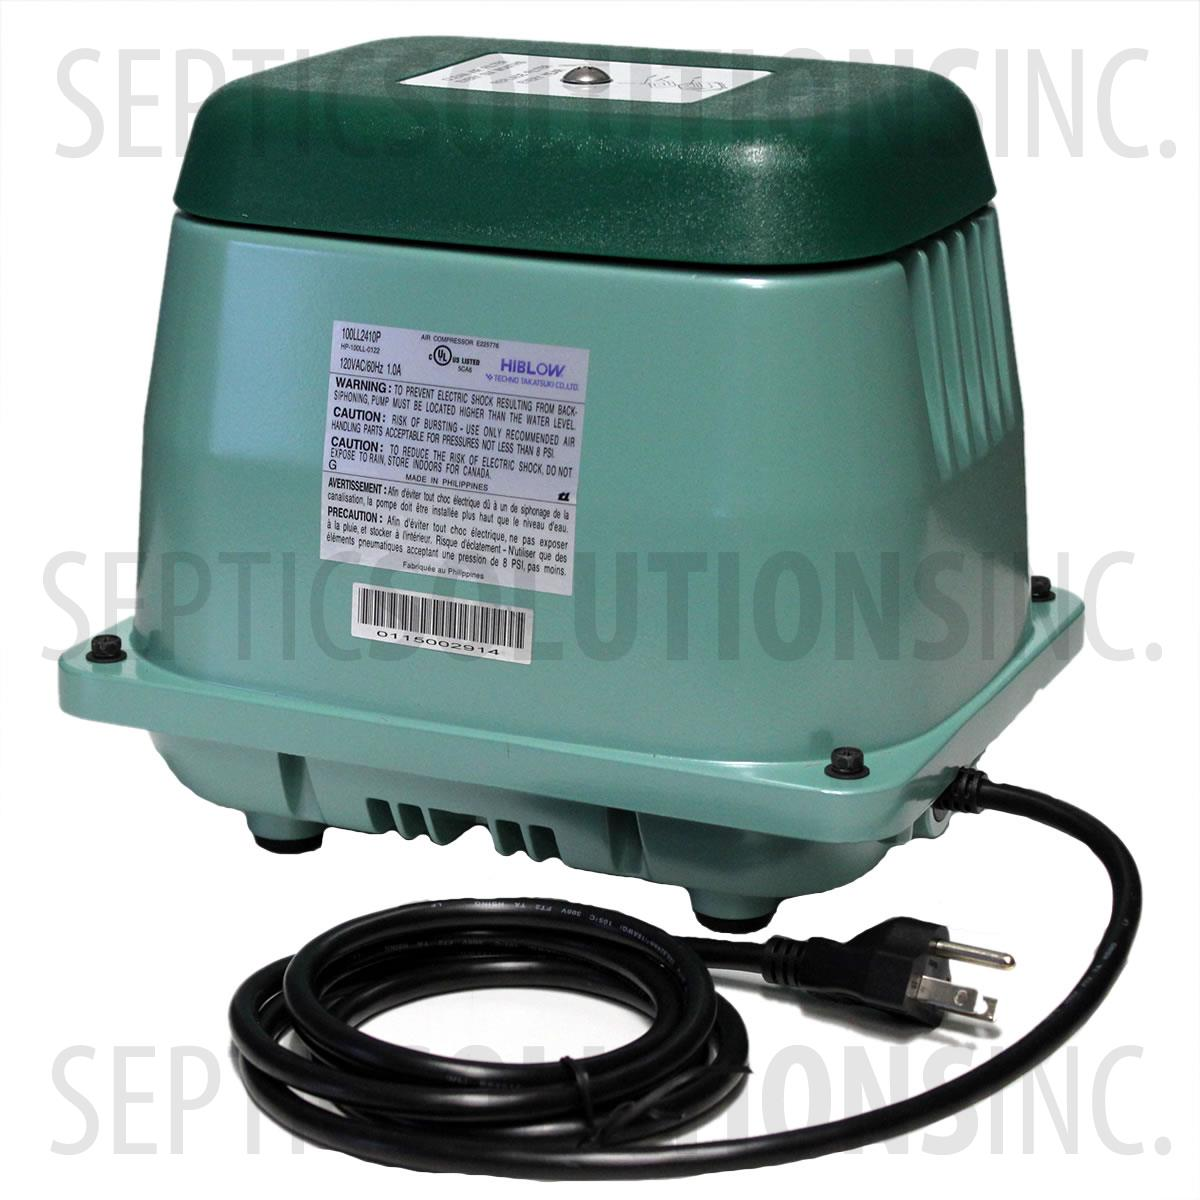 Hydro Action Model Ap 500 Replacement Septic Air Pump